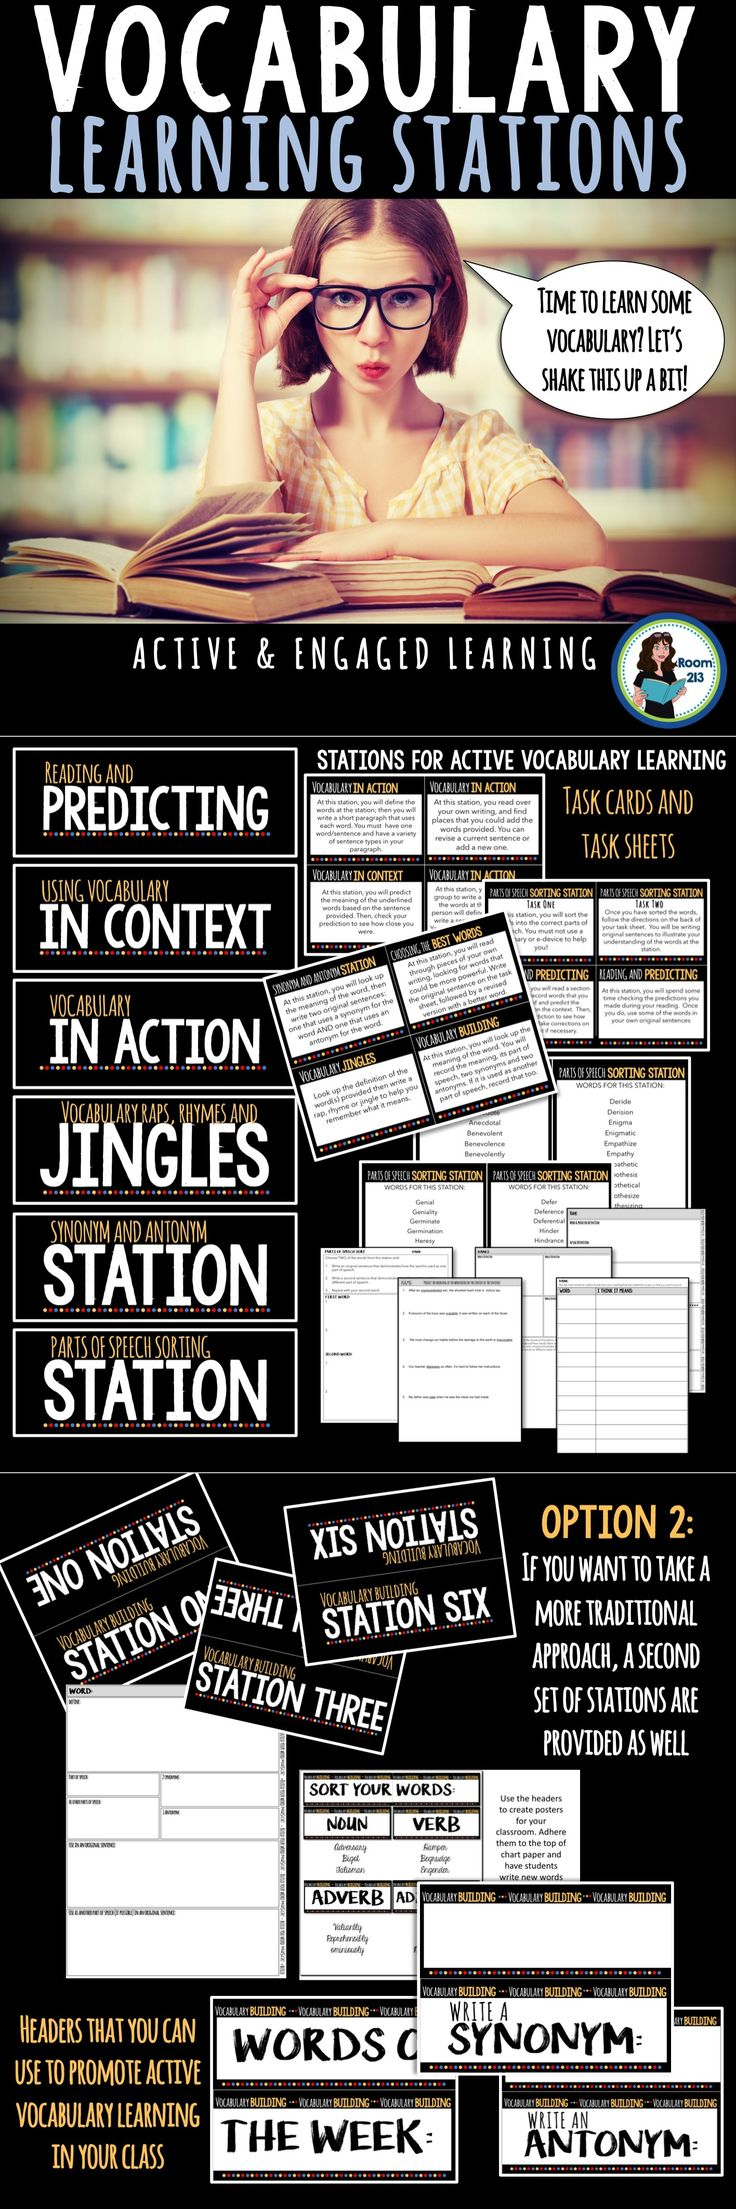 Make vocab learning an active - and fun - process with learning stations.